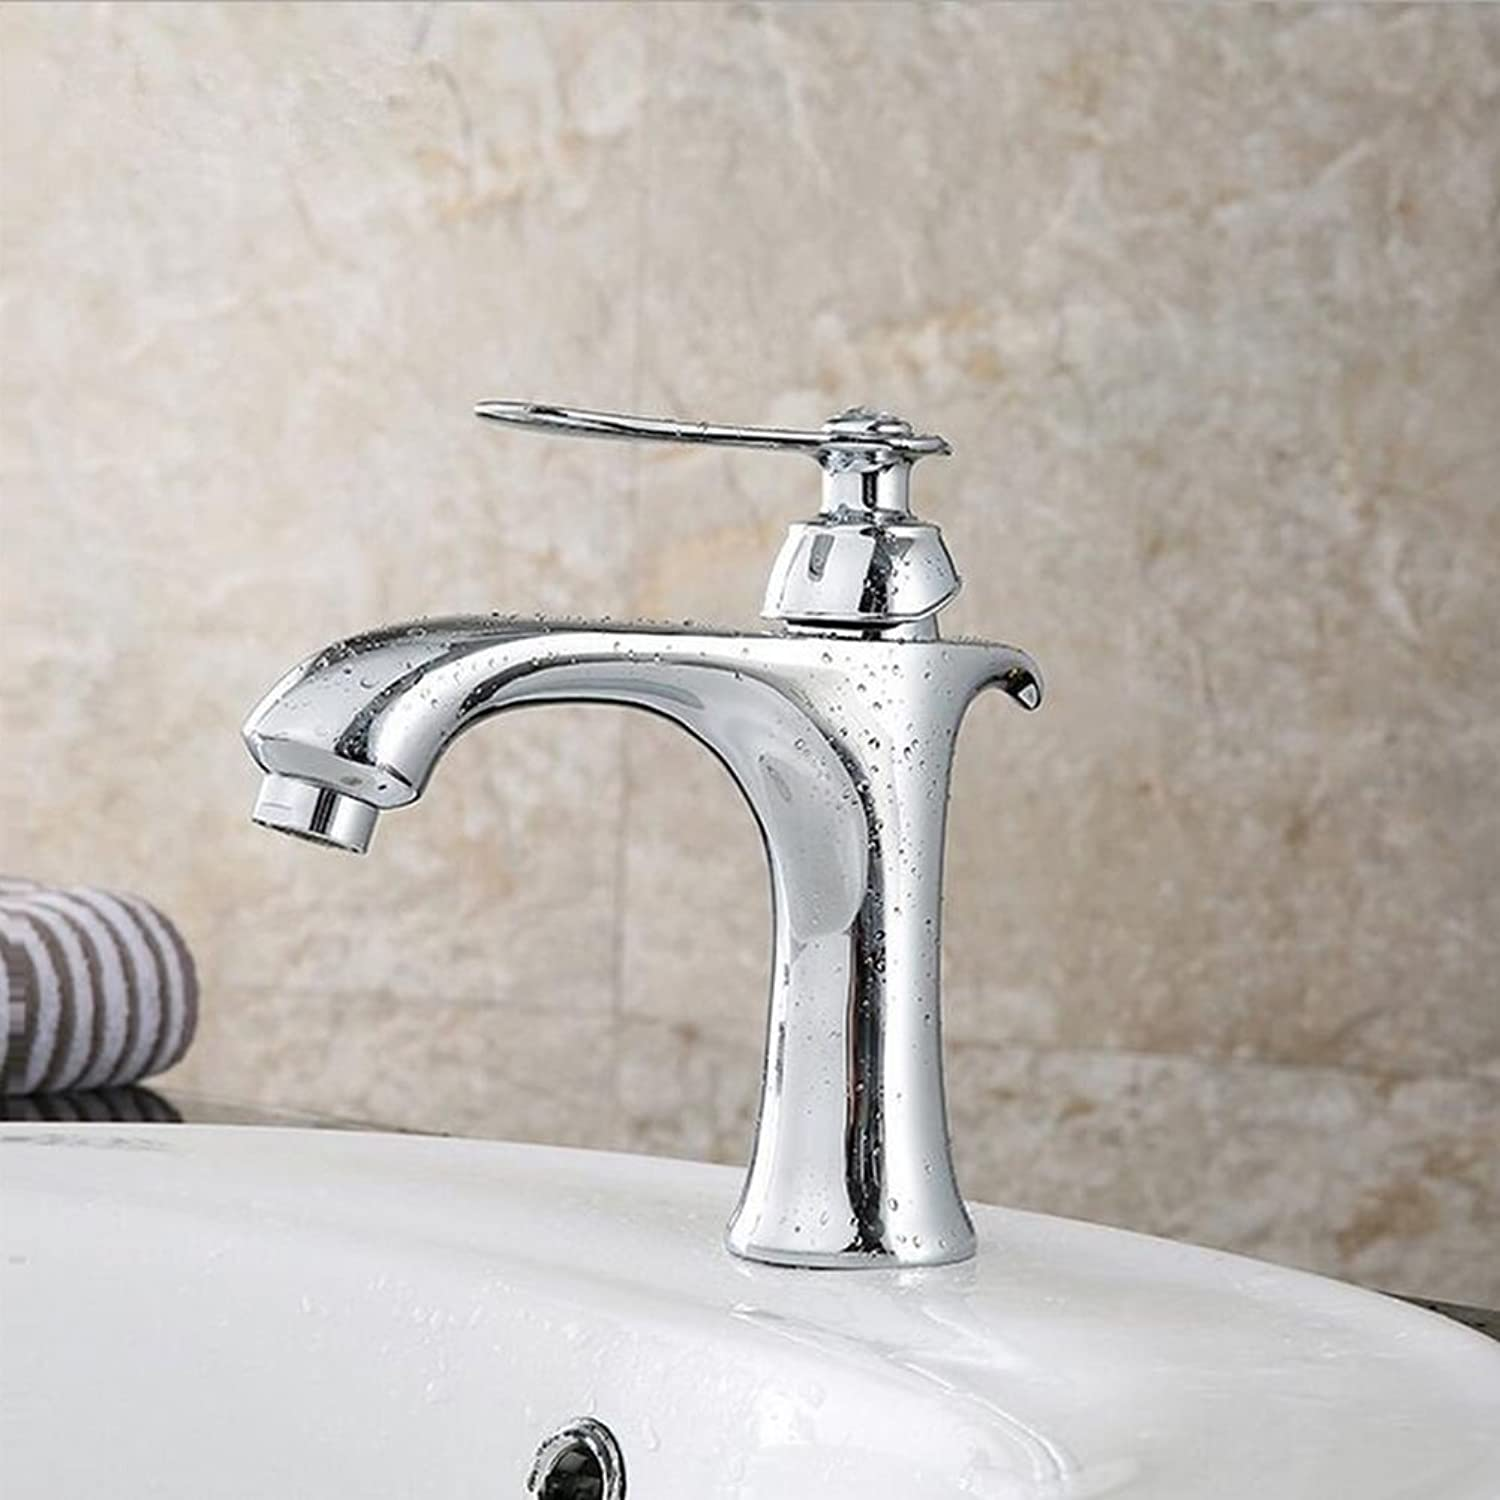 Bathroom Basin Faucet Brass Single Hole Basin Tap Hot And Cold Mixer Tap Basin Sink Mixer Tap Bathroom Sink Taps